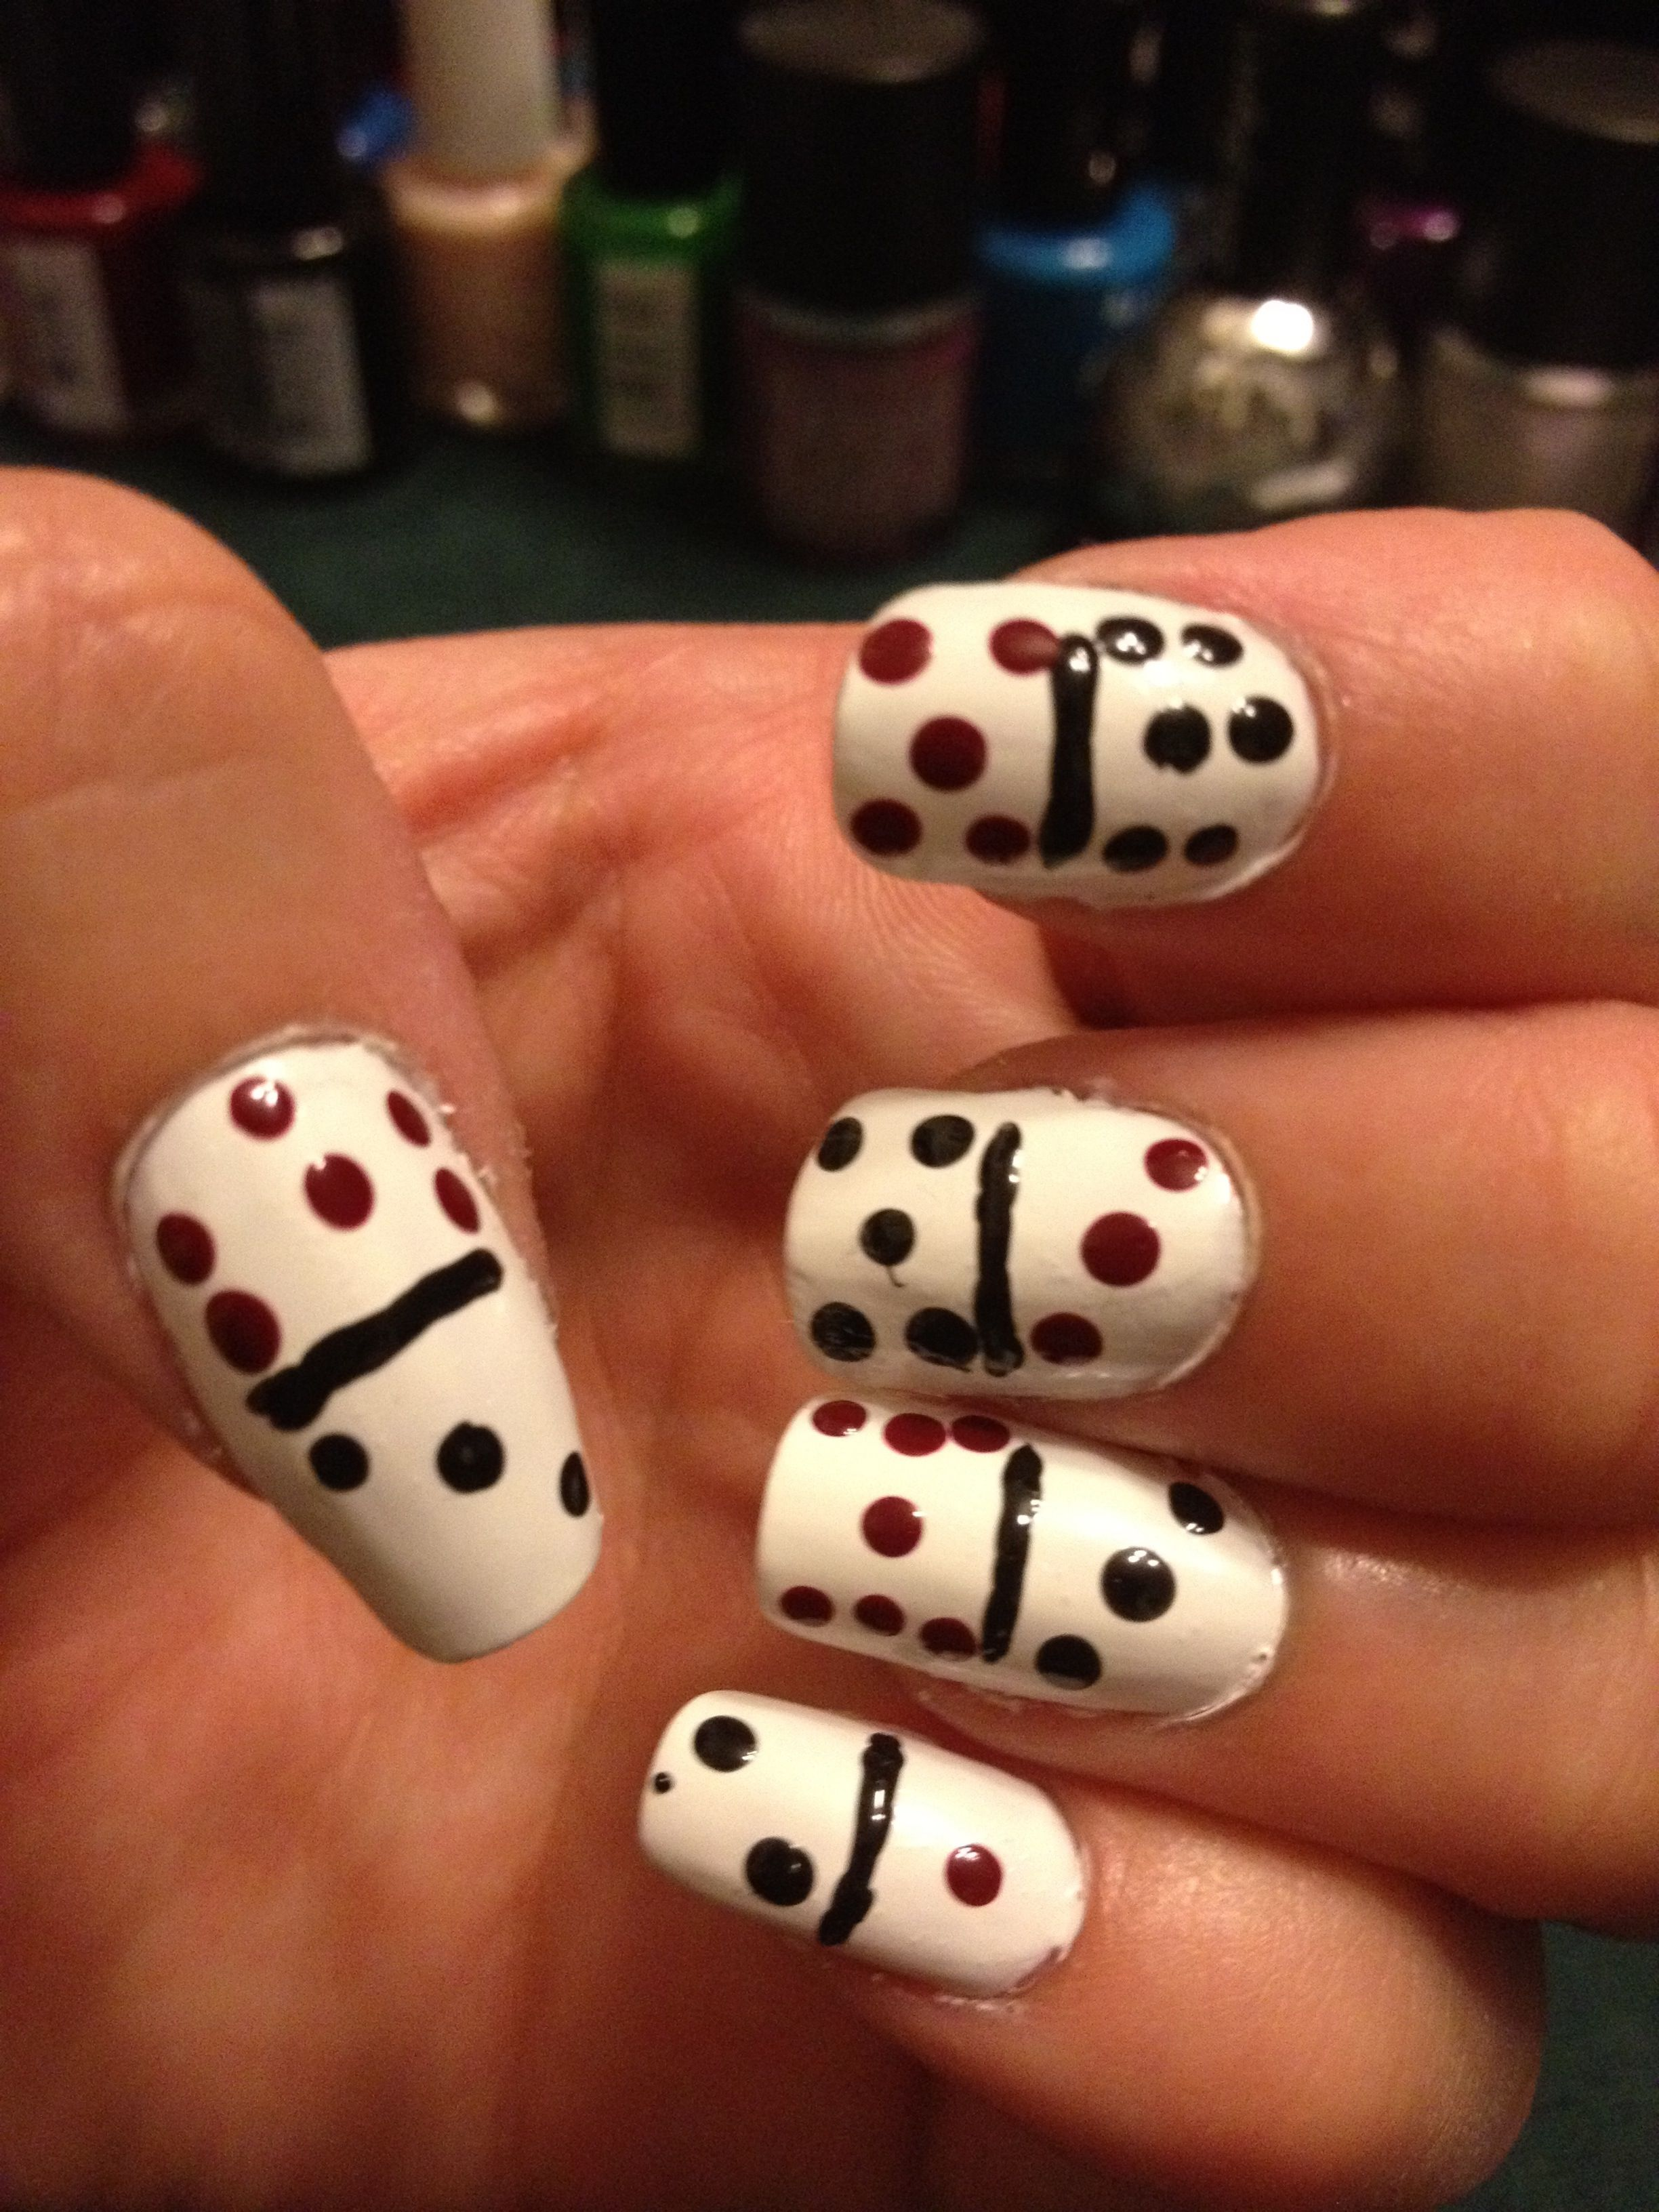 Way Cute Domino Nail Art I D Make The Dots Diffe Colors Like They Are For My Dominos